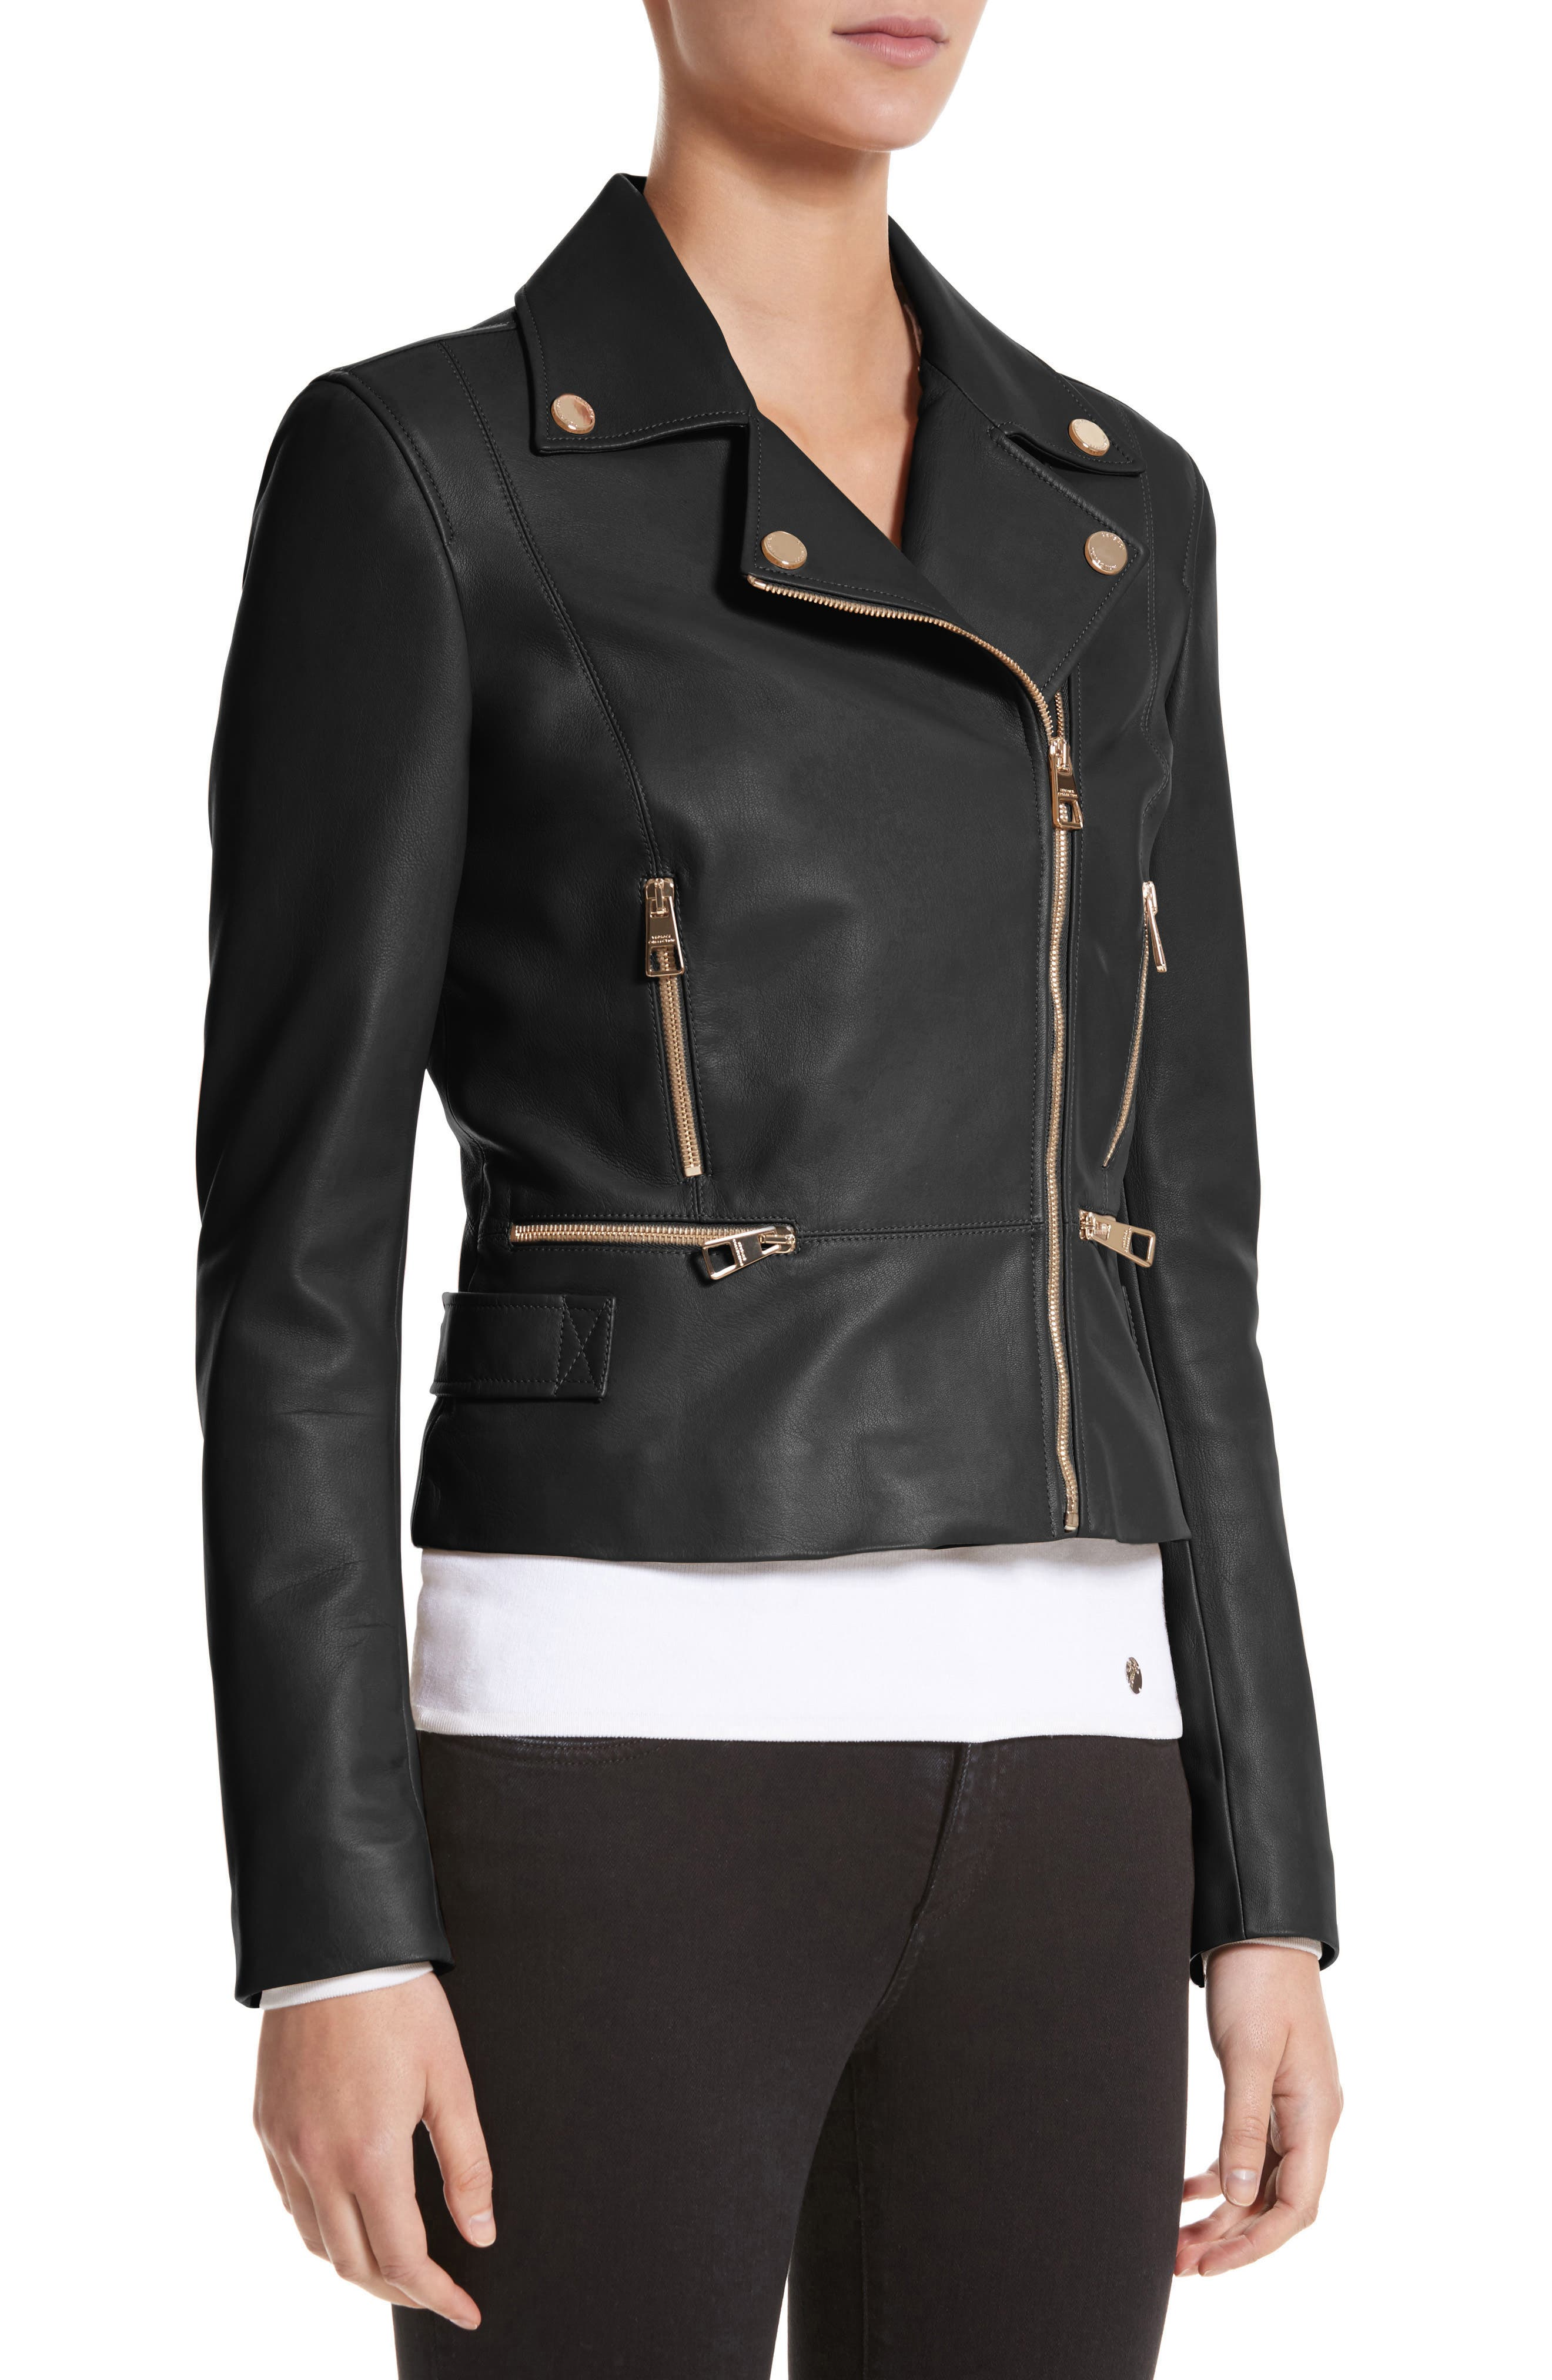 Nappa Leather Jacket,                             Alternate thumbnail 4, color,                             001